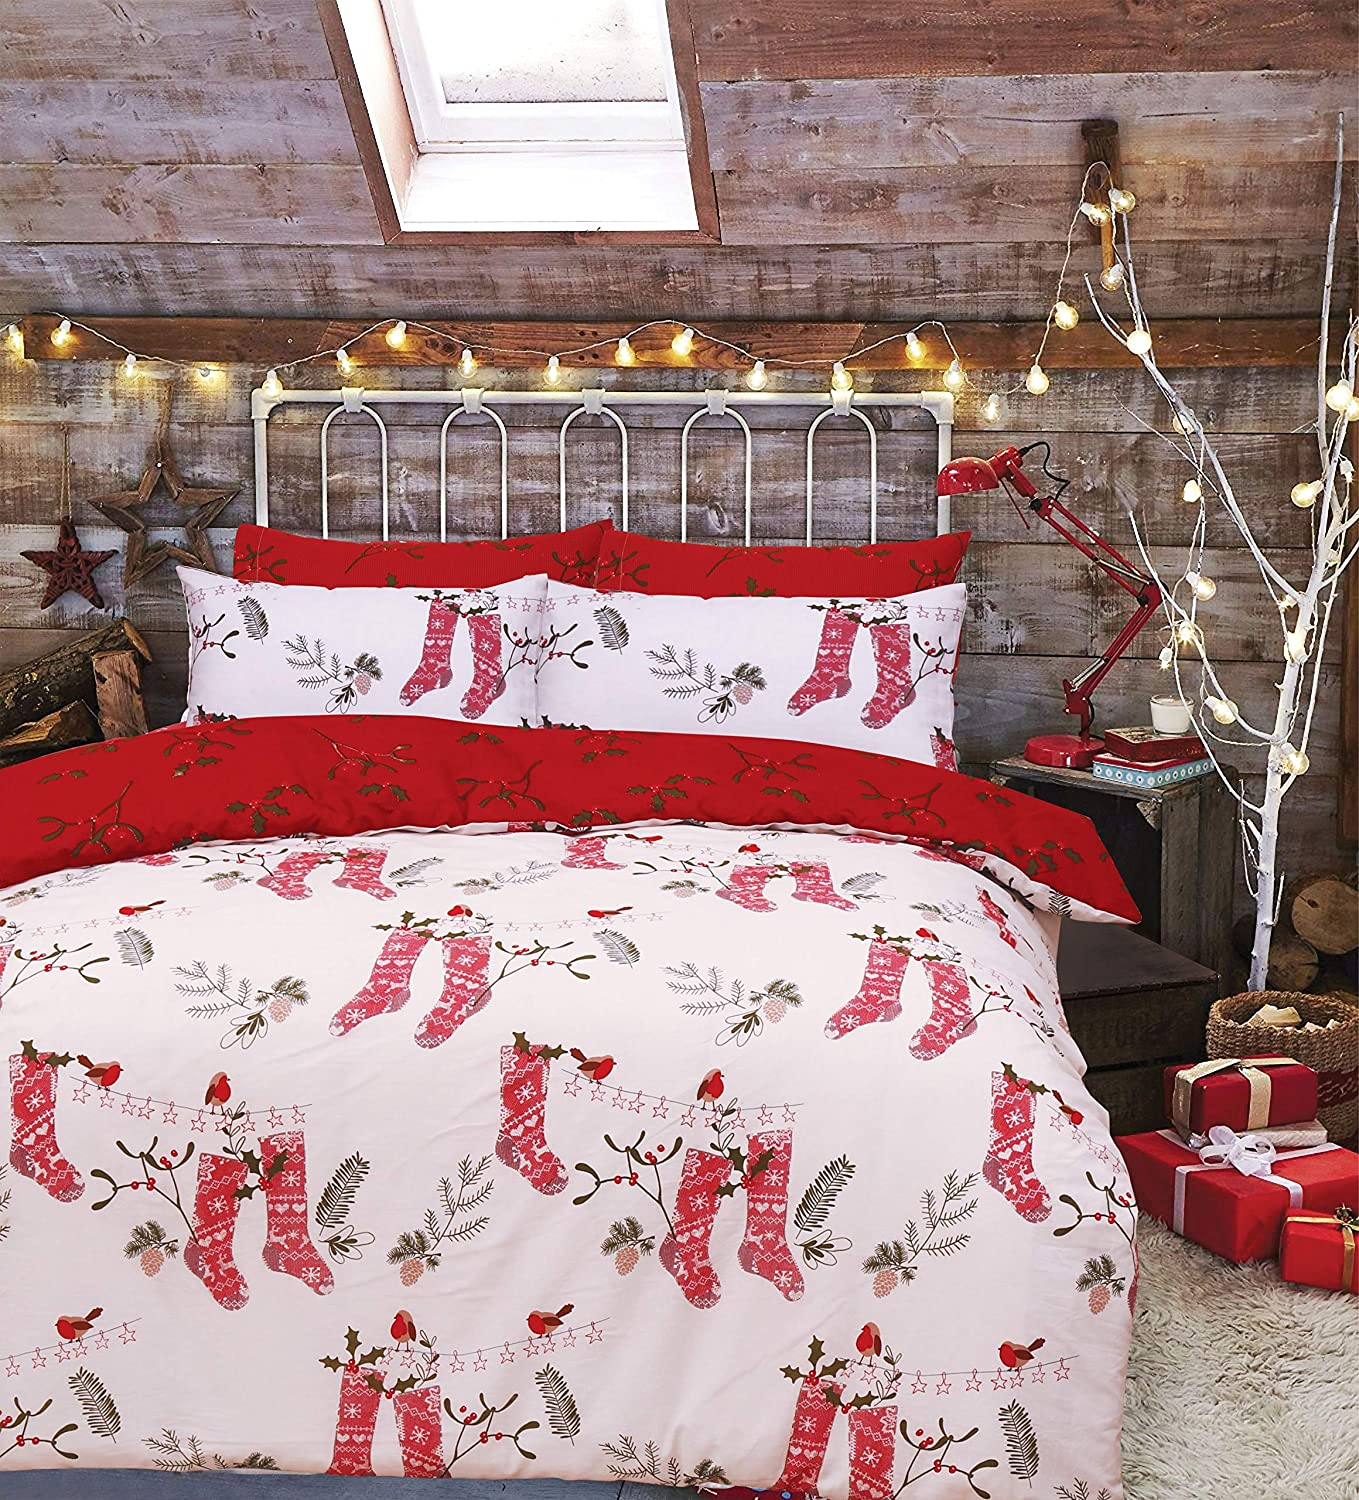 Red Christmas Stocking Robin Duvet Covers Xmas Print Easycare Quilt Bedding Sets